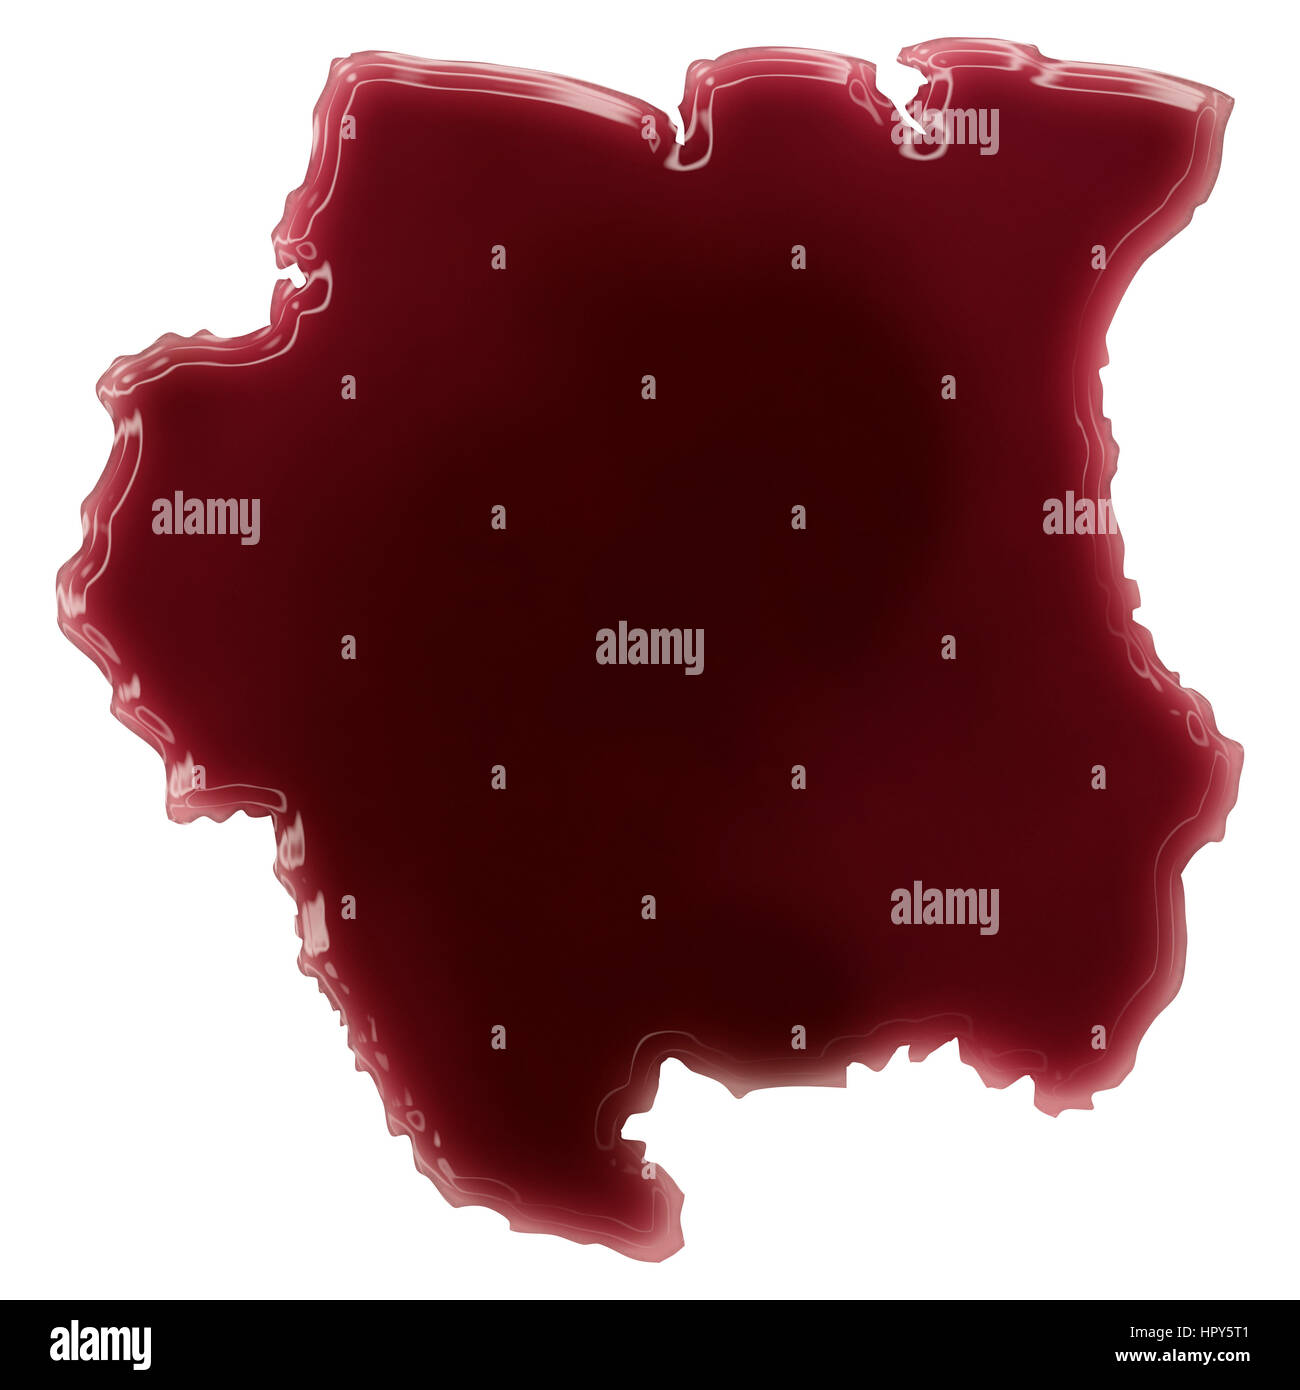 Pool of blood (or wine) that formed the shape of Suriname. (series) - Stock Image